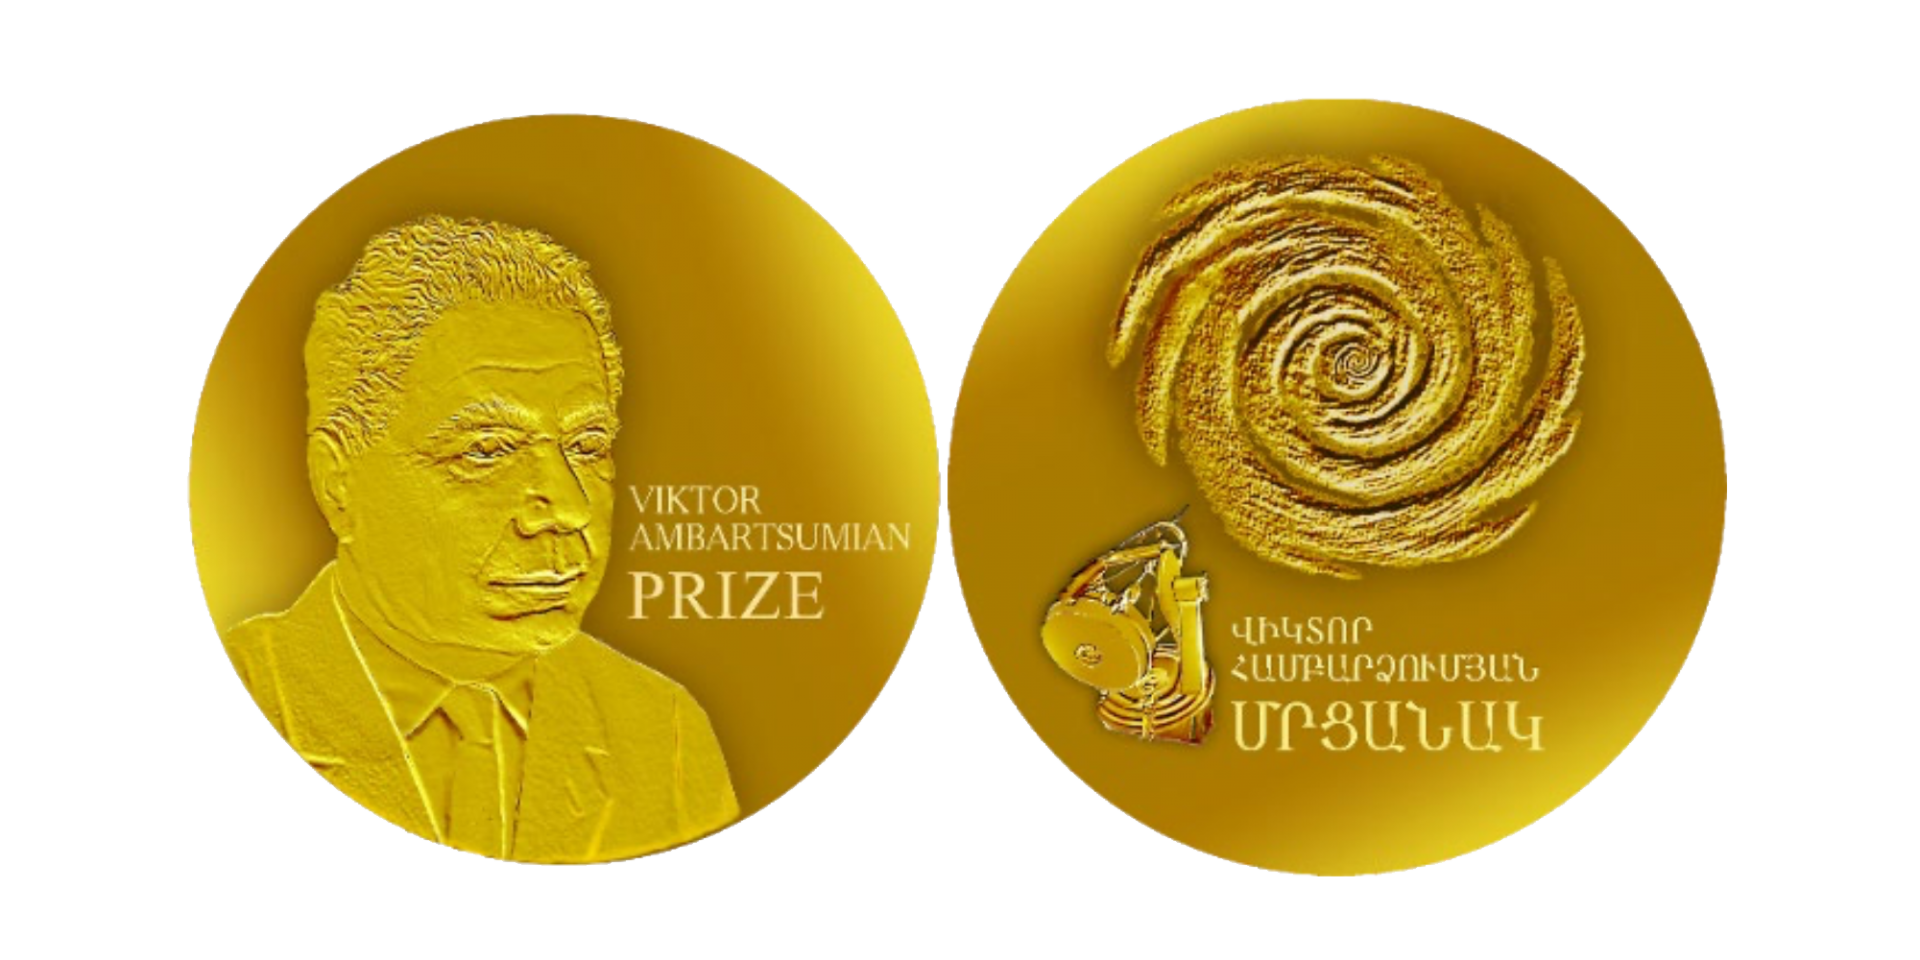 Viktor Ambartsumian International Science Prize medal, front and back